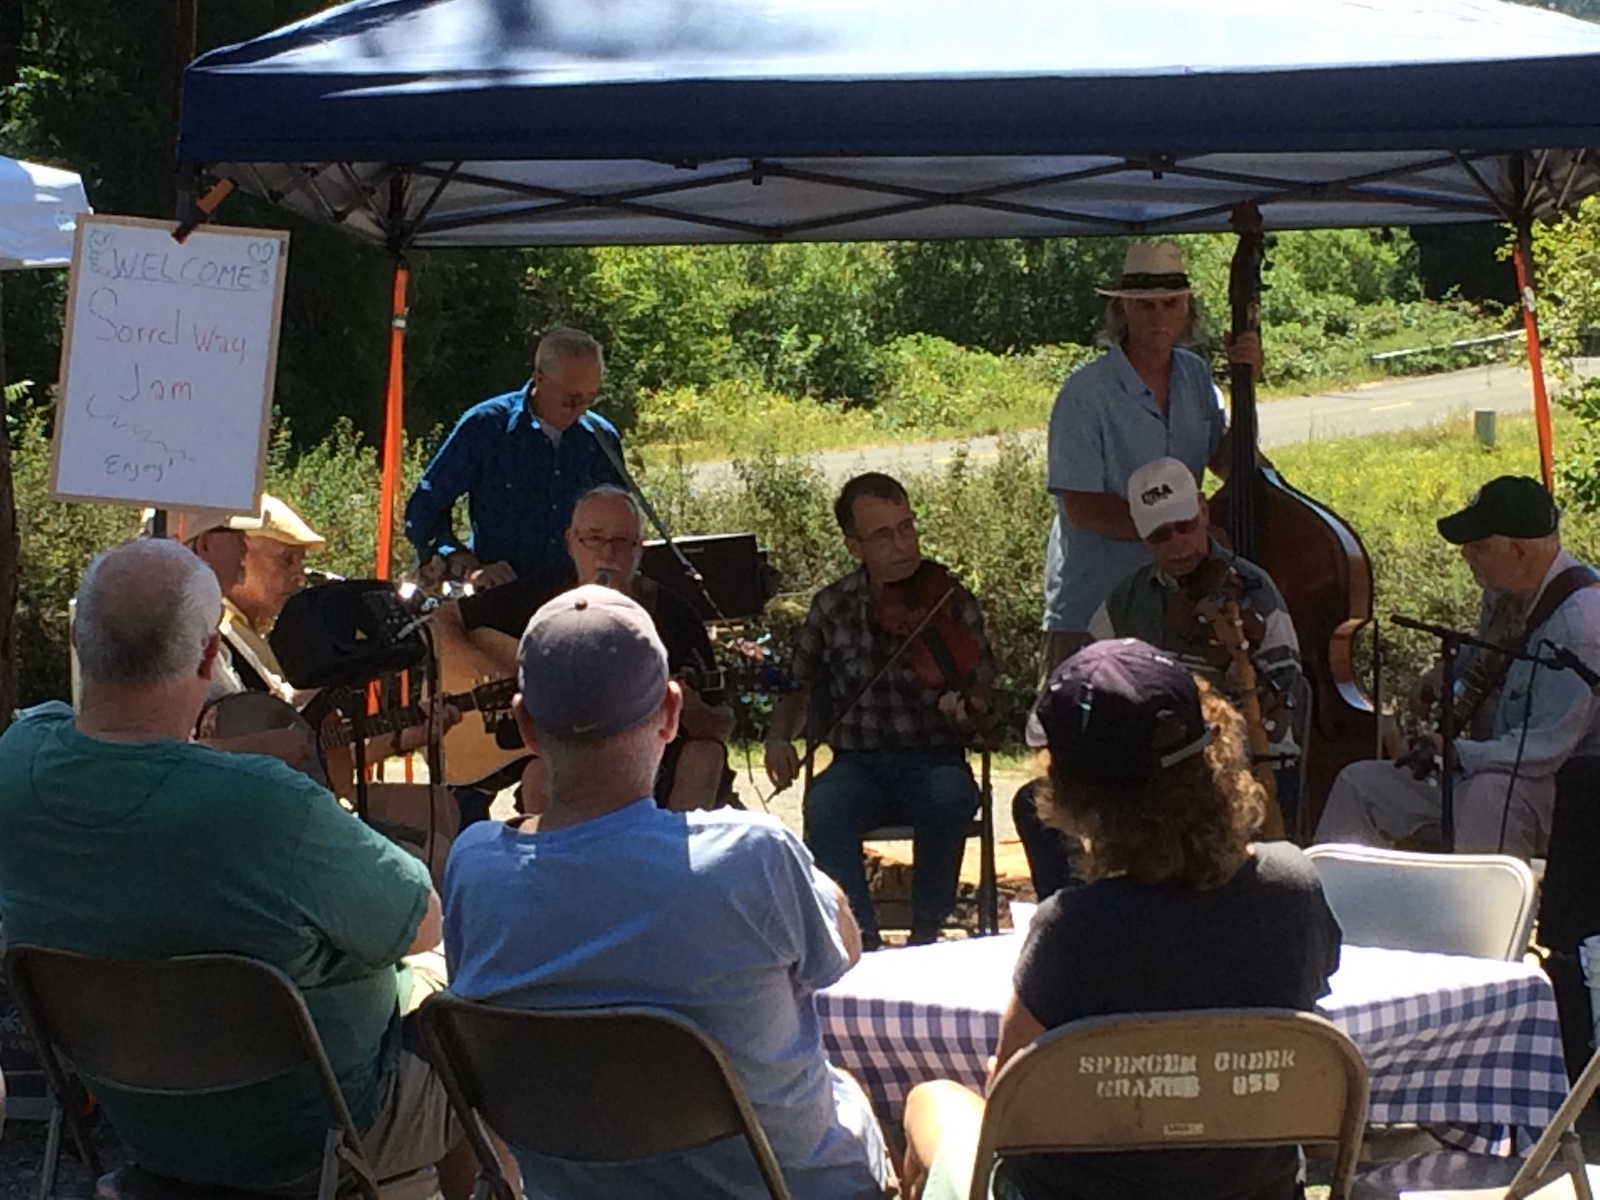 Sorrel Way Jam performs at the Spencer Creek Growers Market in July 2018